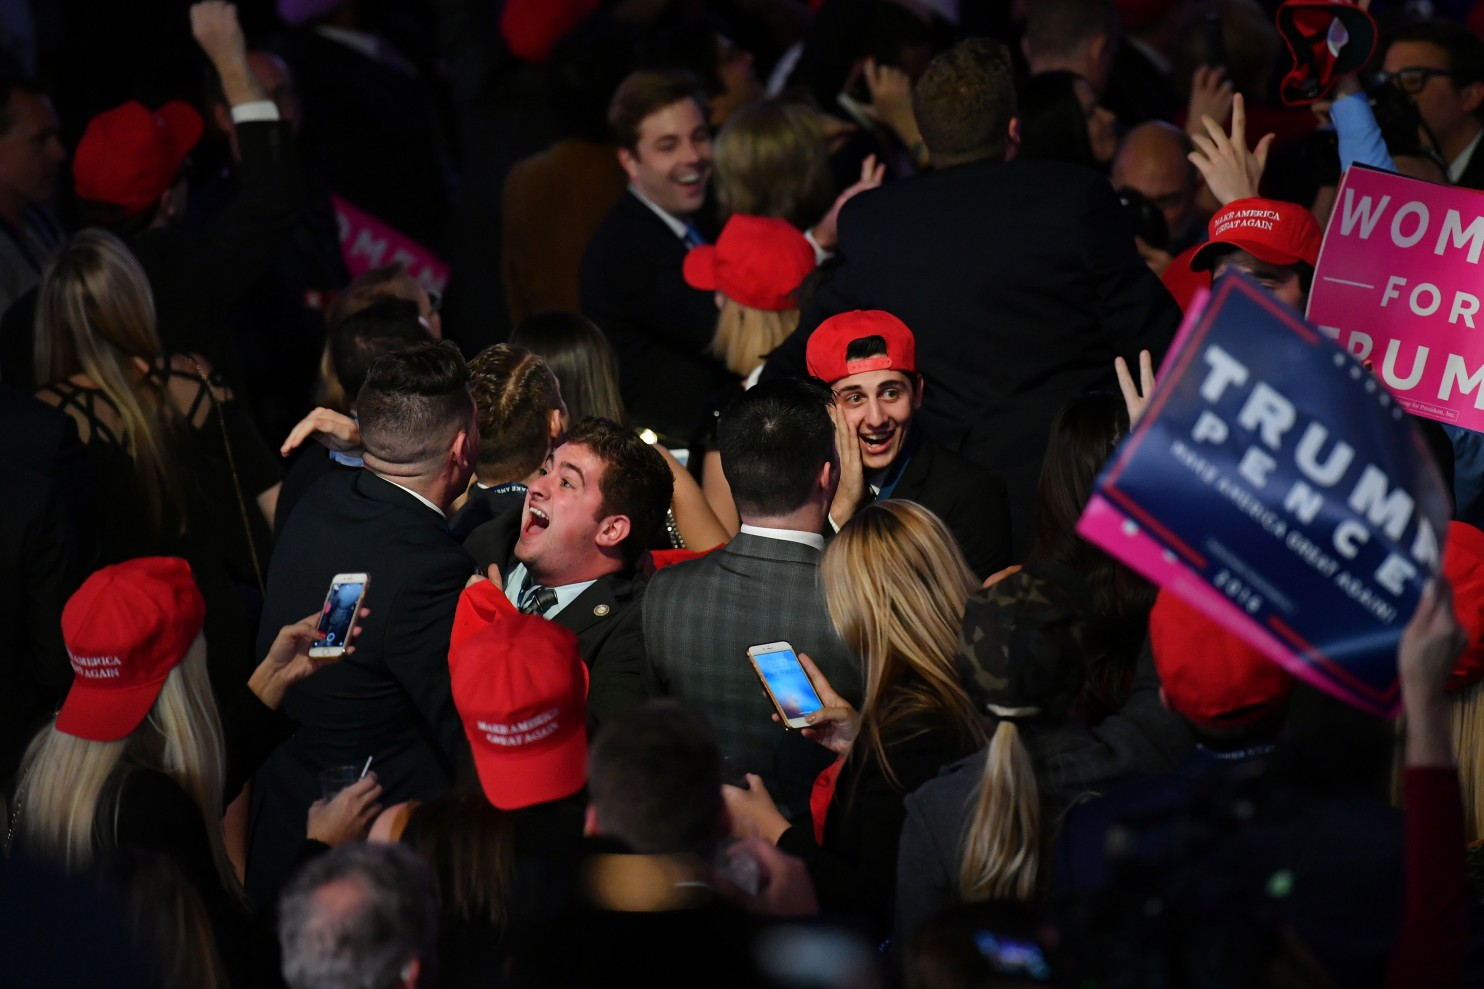 Des partisans du candidat républicain Donald Trump applaudissent lors de la soirée électorale du 8 novembre 2016, à New York. (Ricky Carioti - The Washington Post)